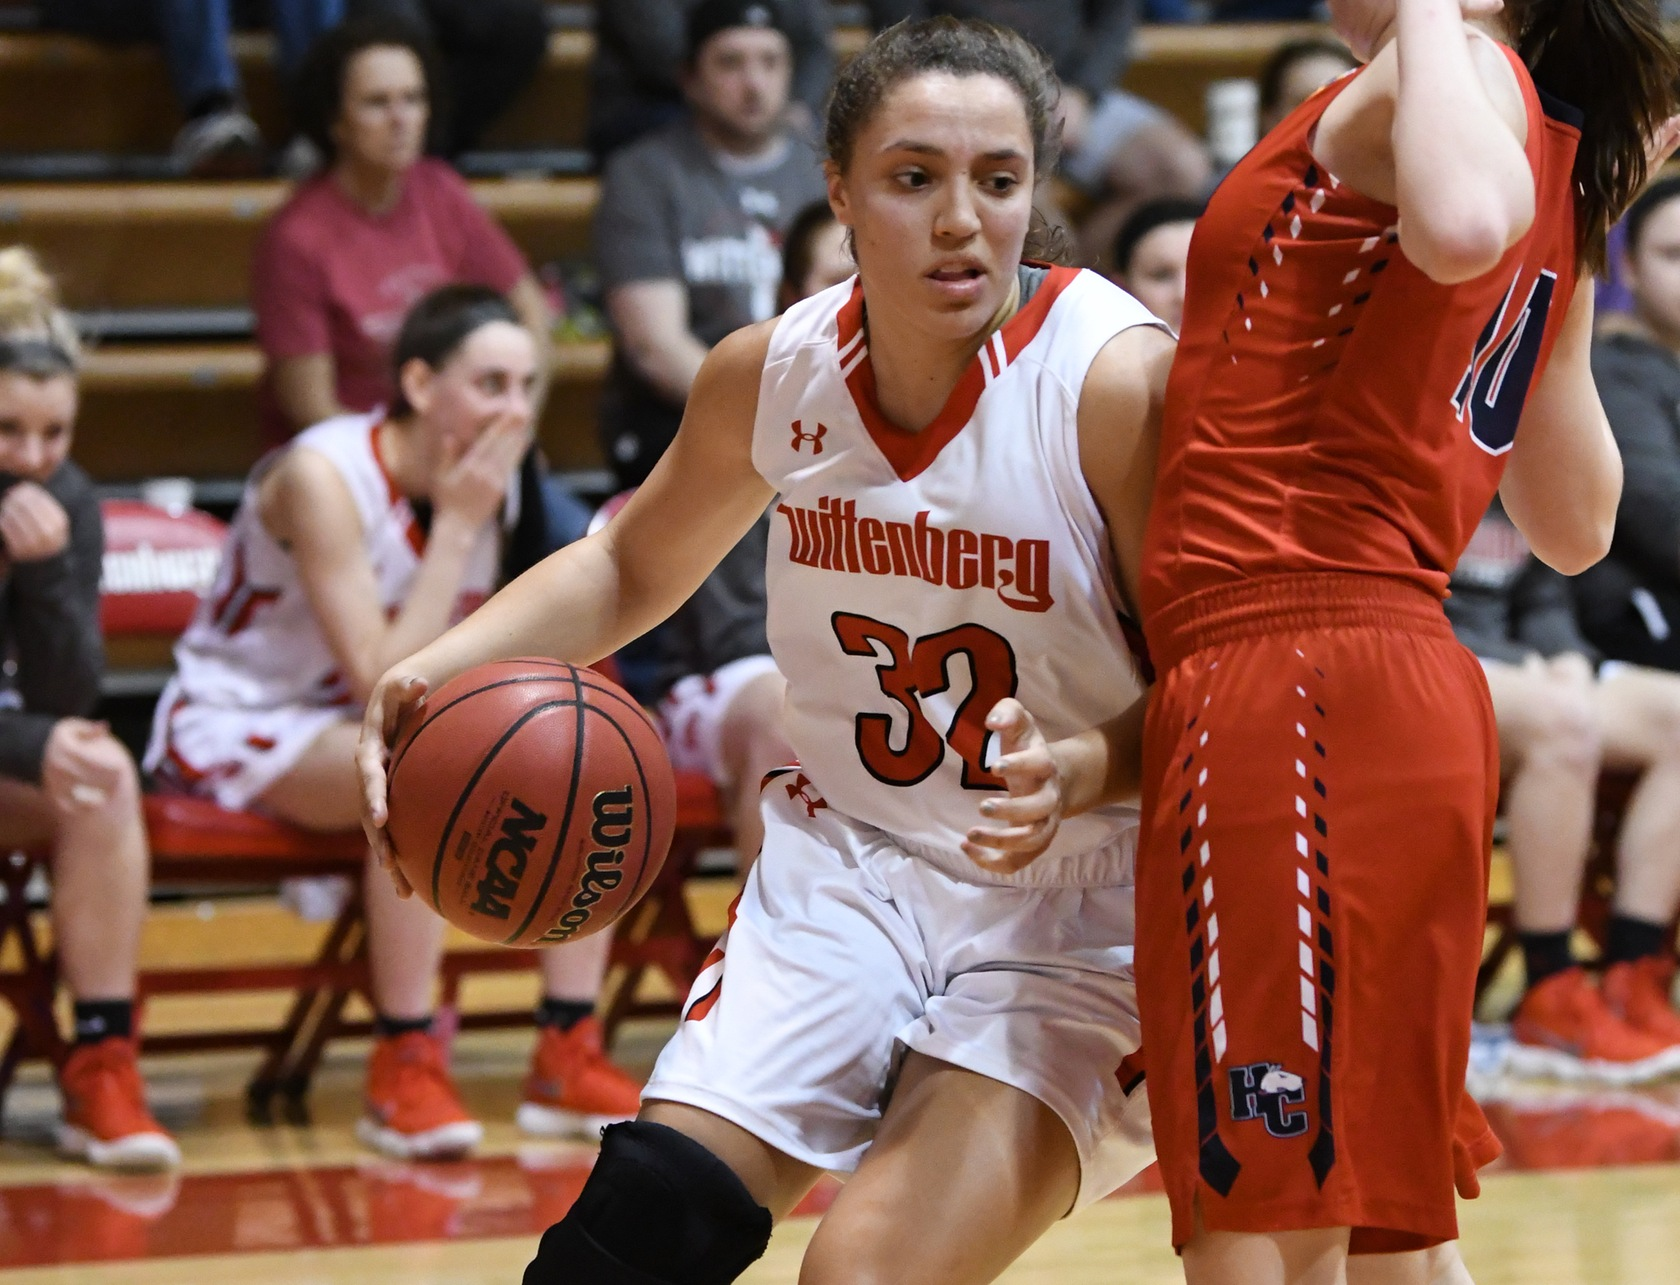 Women's Basketball Scores First Win of the Season